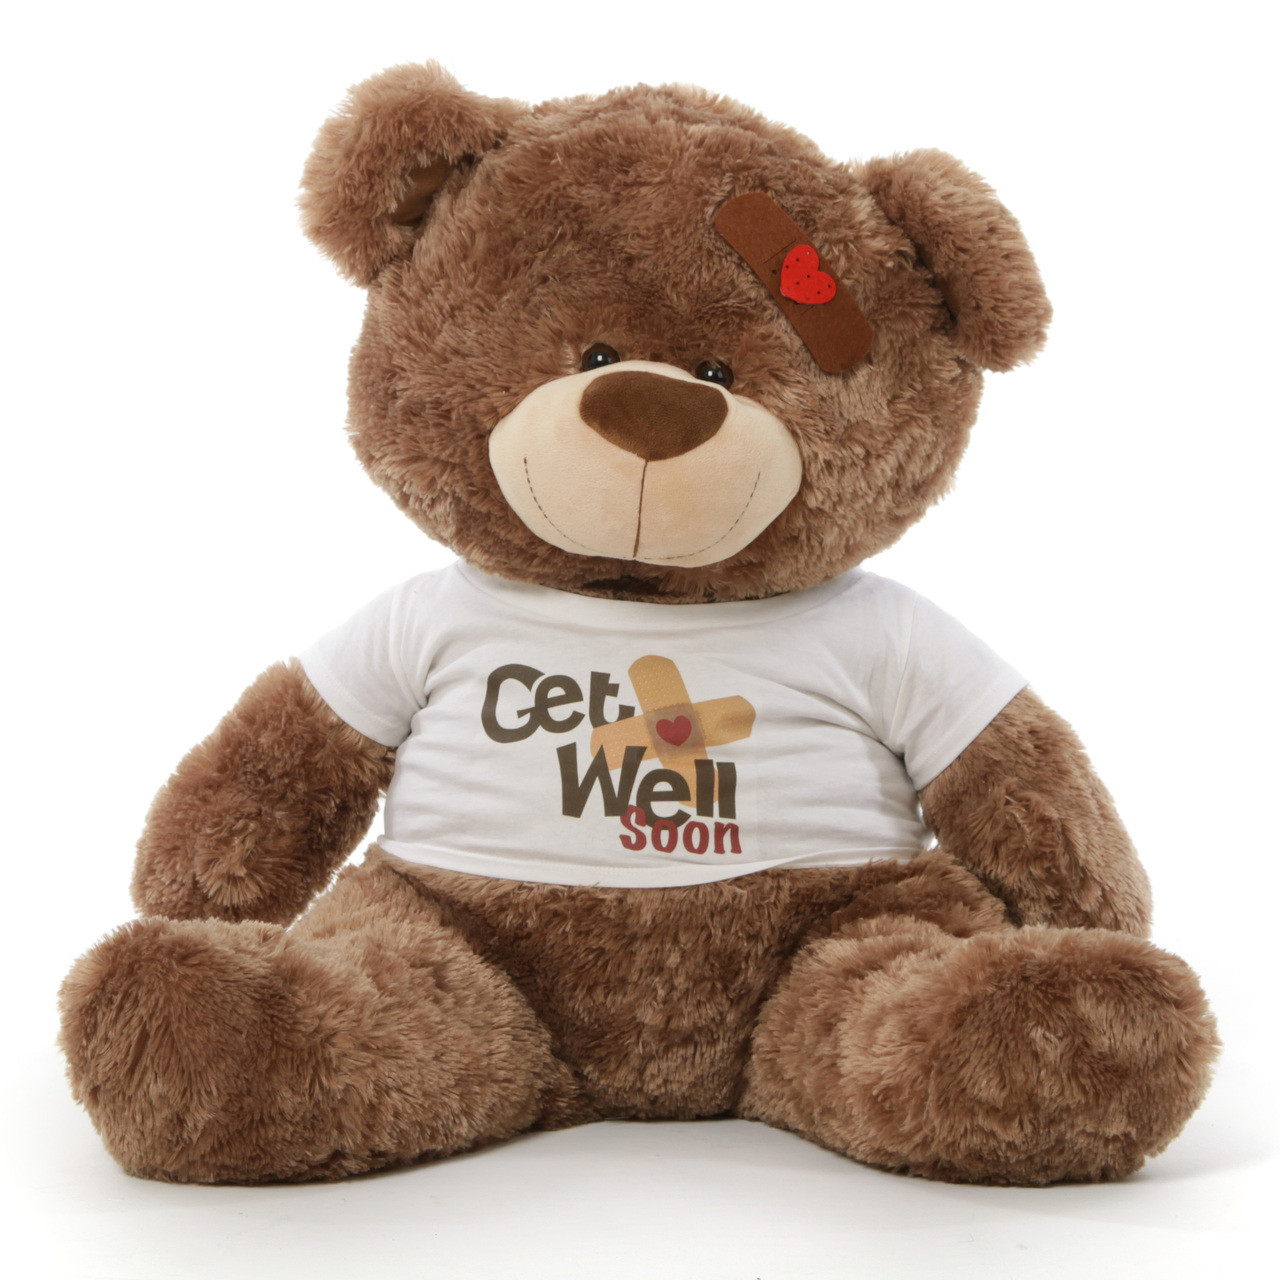 adorable big get well soon teddy bears in 3 colors with custom shirt